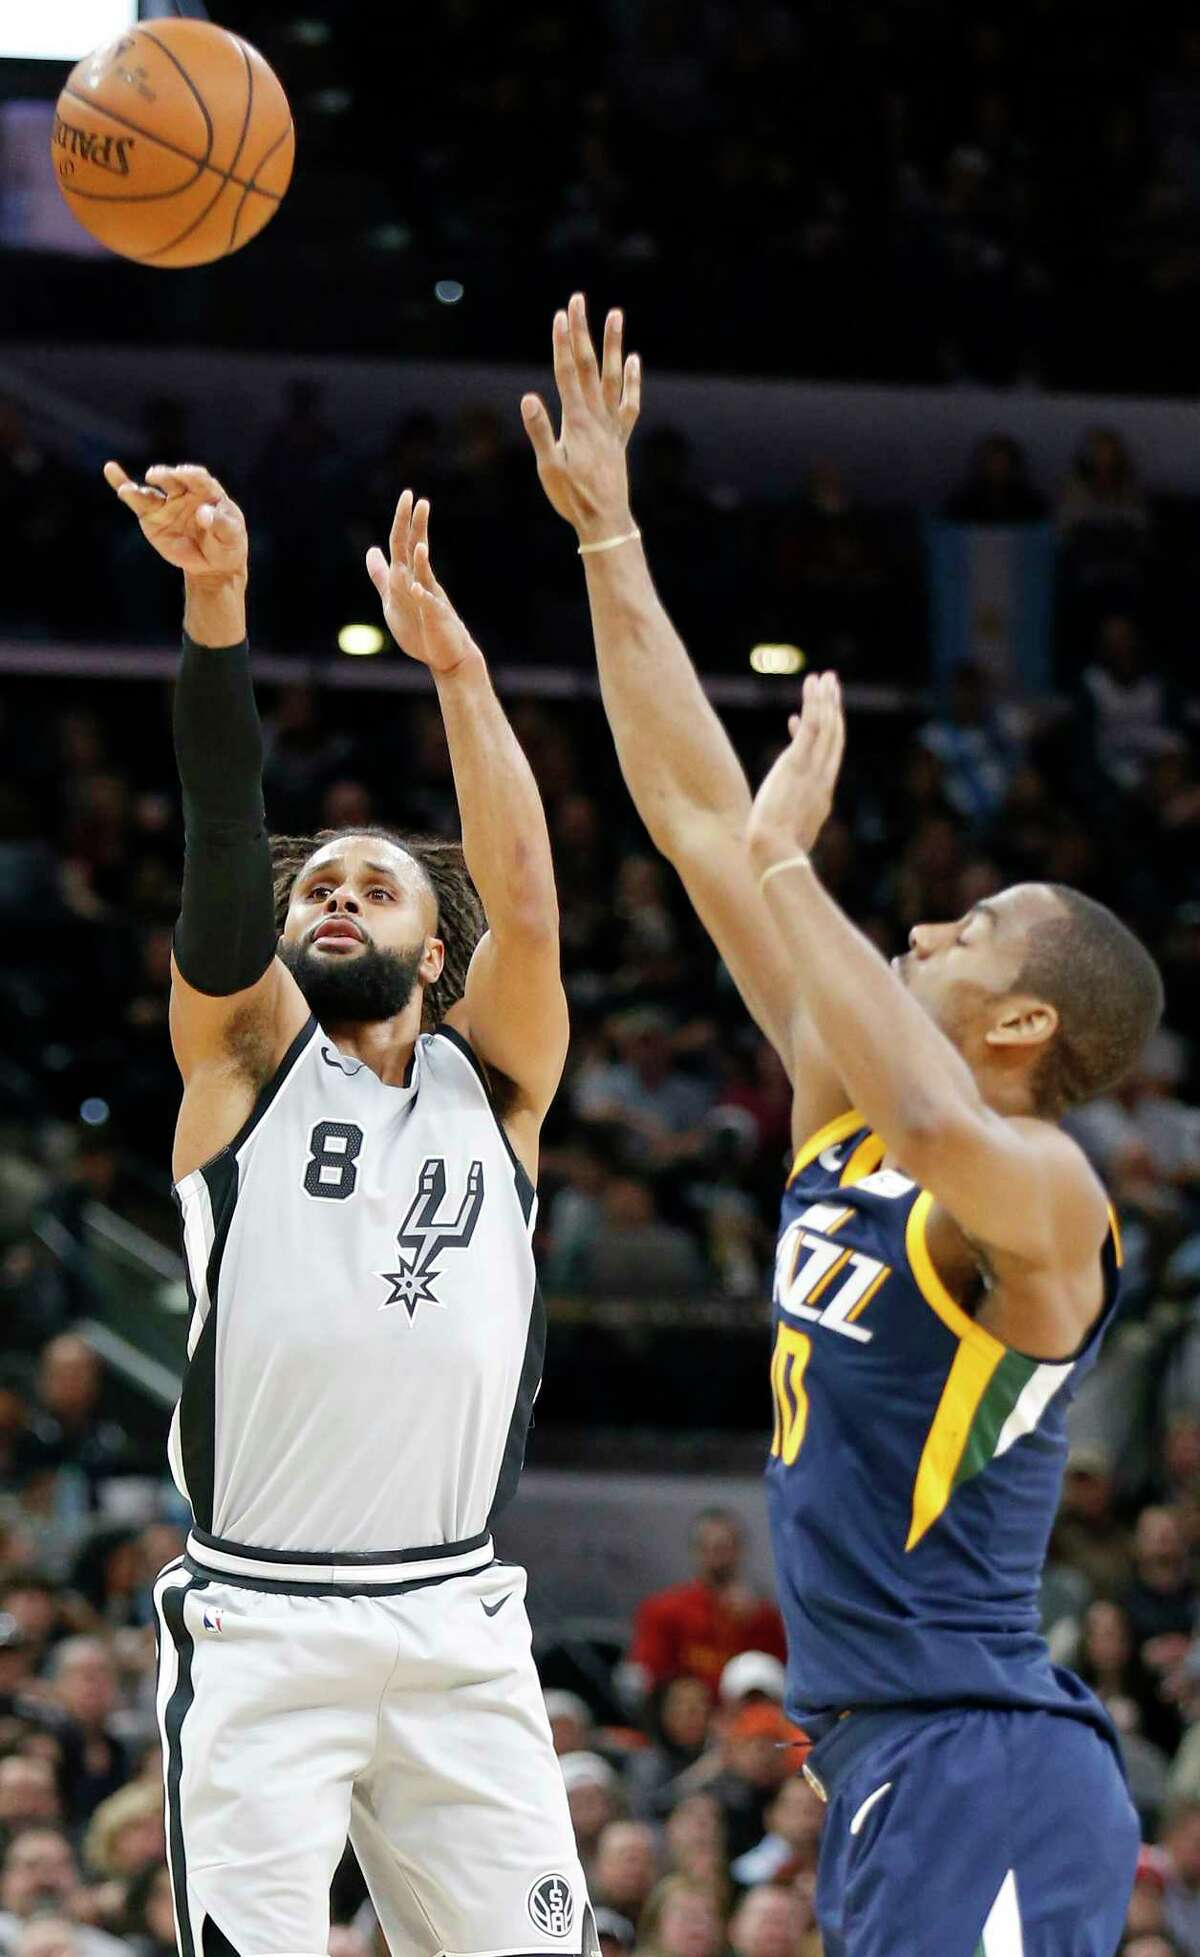 San Antonio Spurs' Patty Mills shoots around Utah Jazz's Alec Burks during first half action Saturday Feb. 3, 2018 at the AT&T Center.